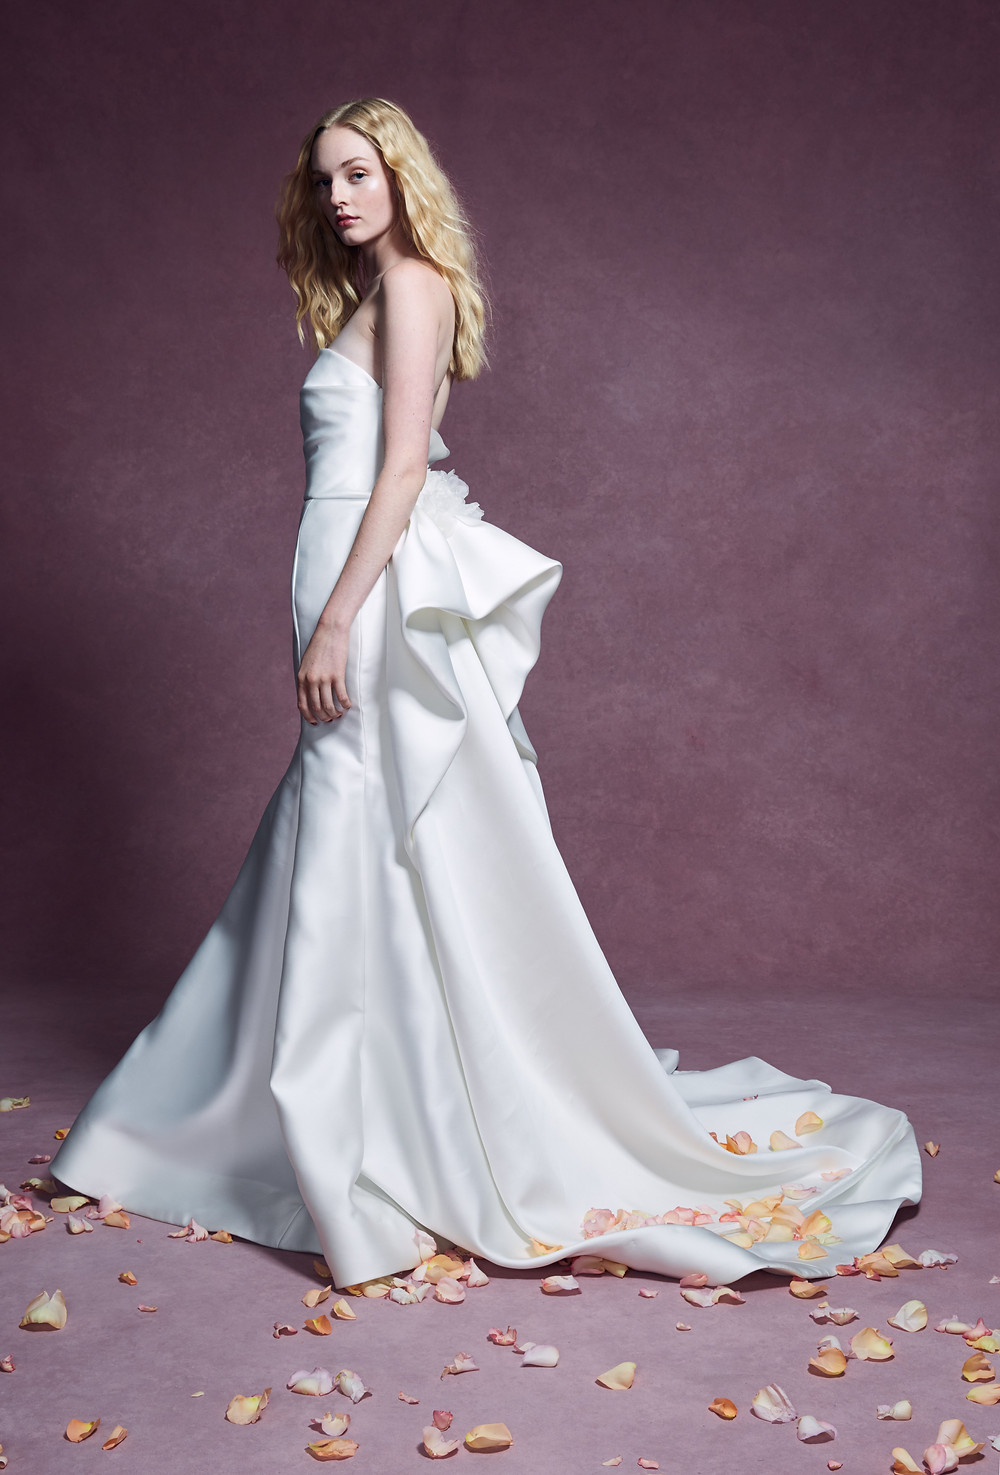 A Marchesa 2020 trumpet style wedding dress, with sweetheart neckline and a large bow